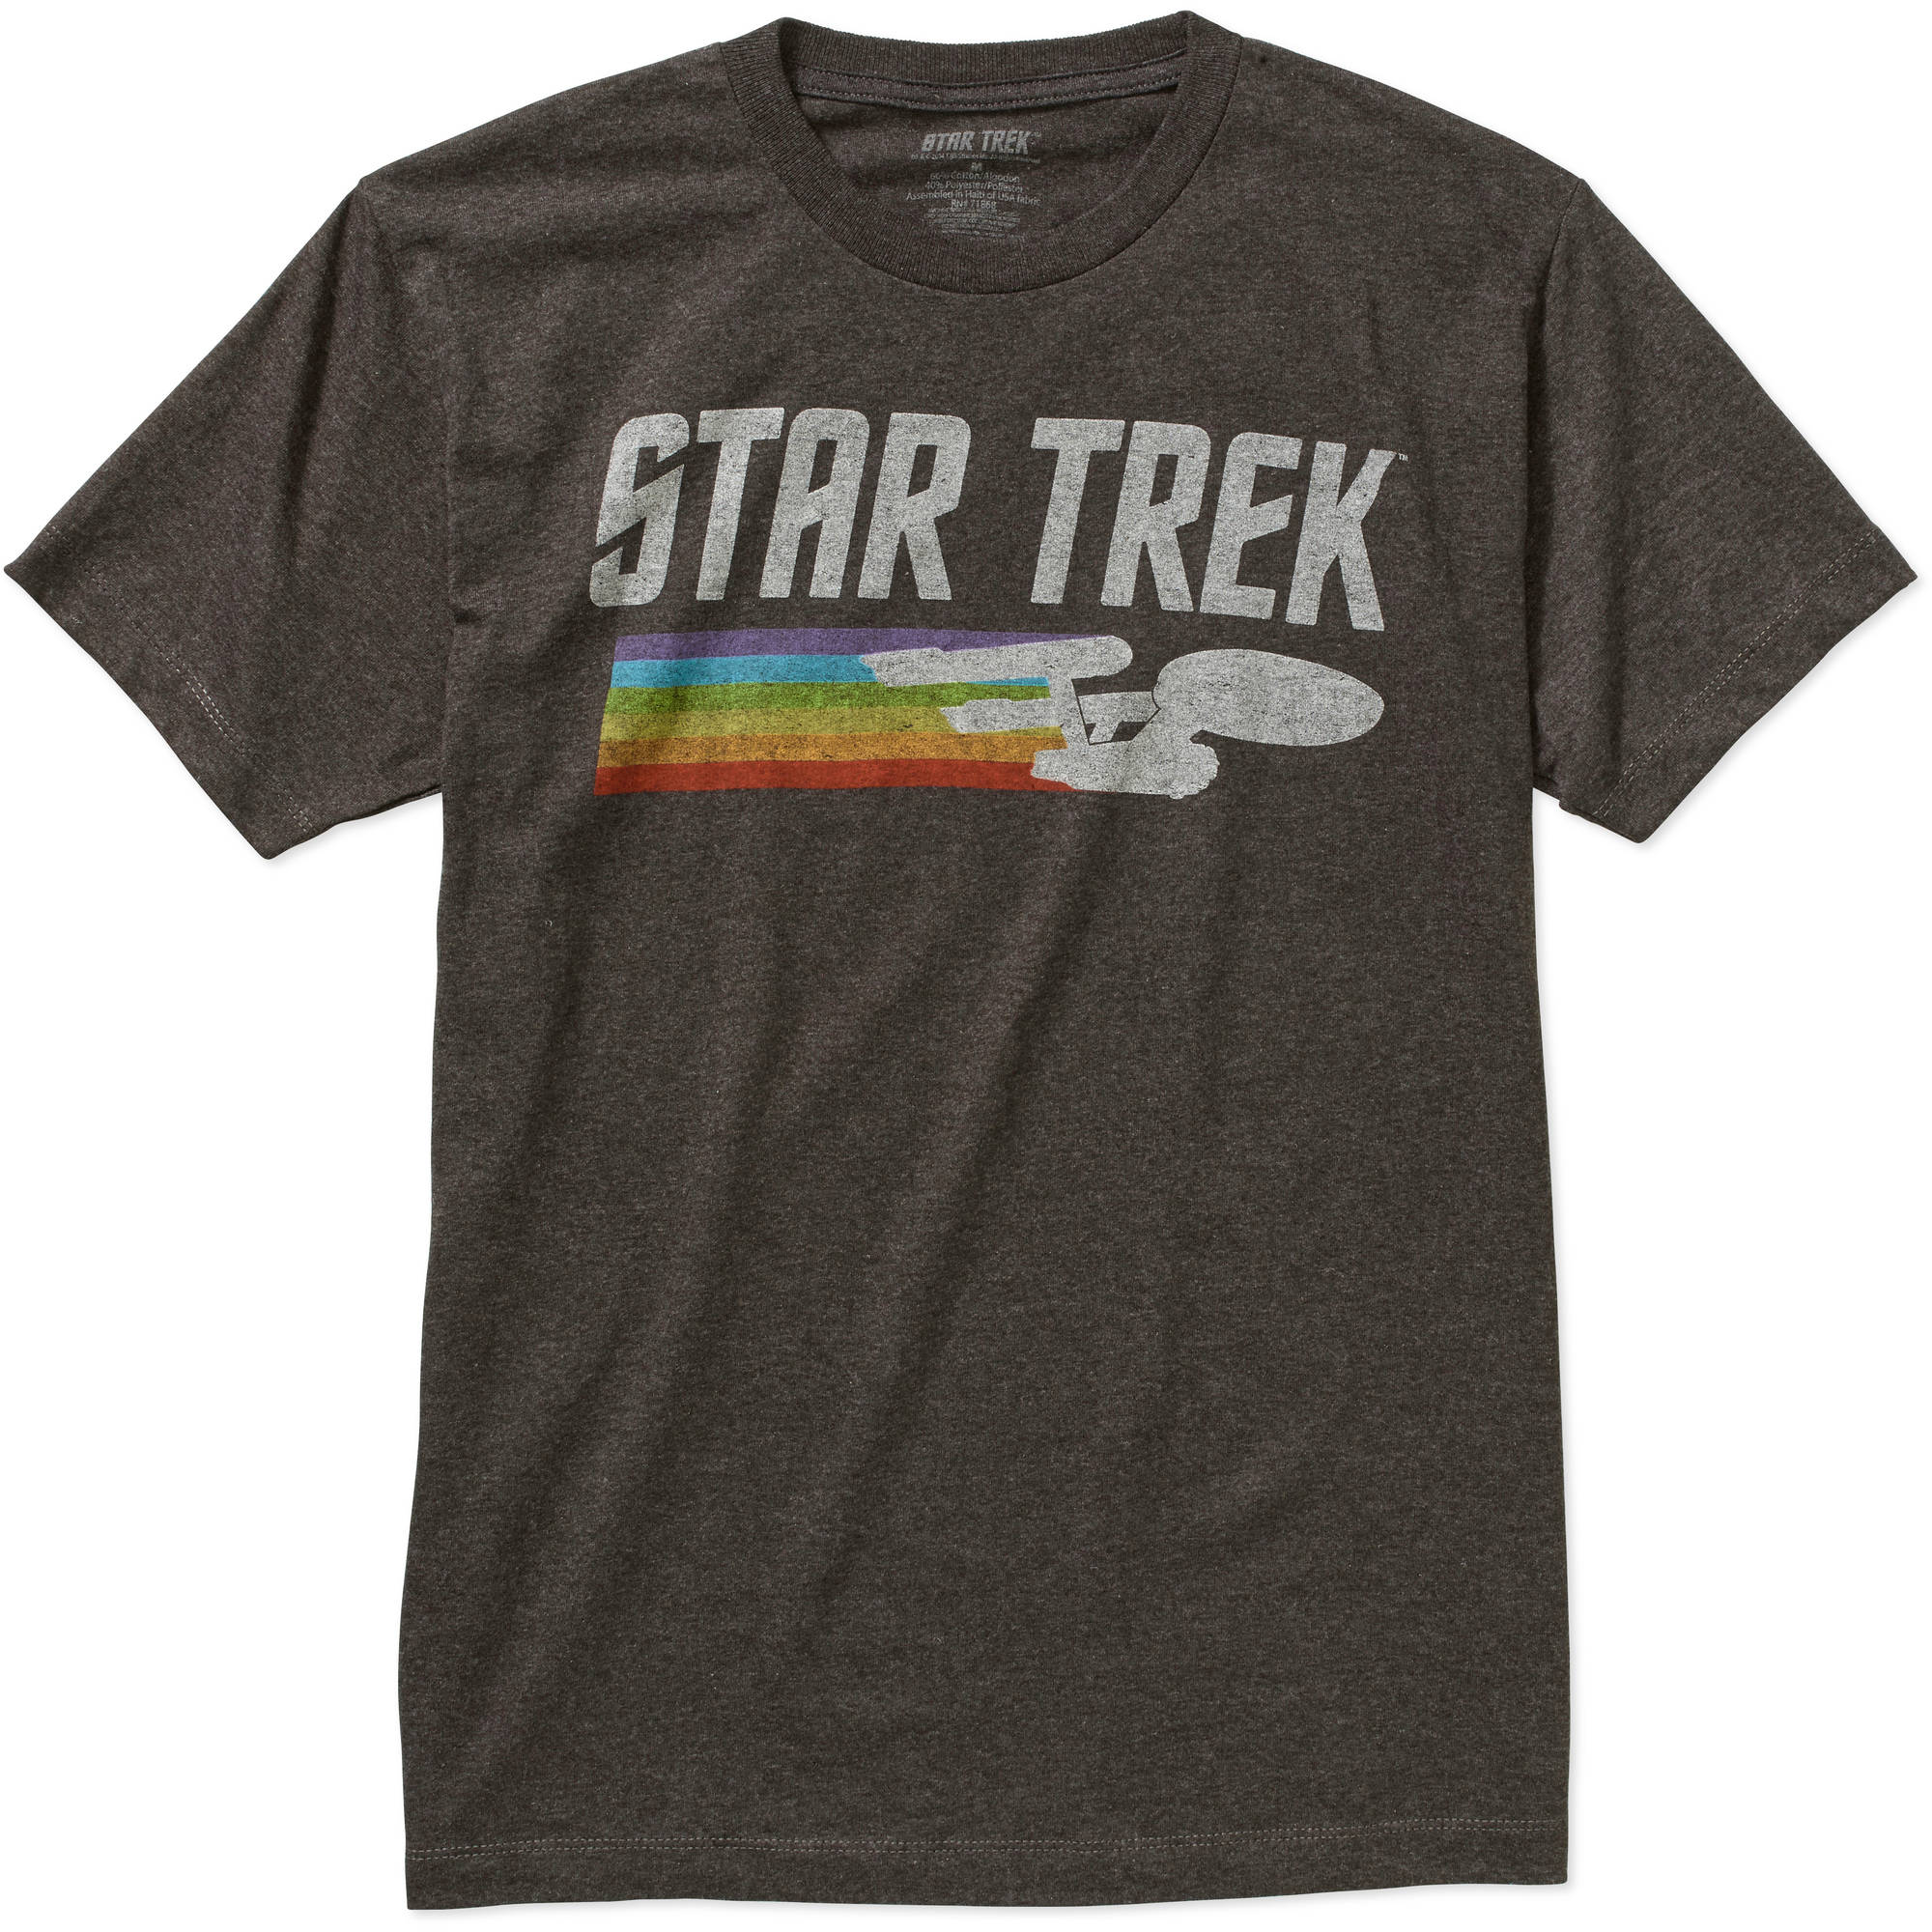 Star Trek Men's Graphic Short Sleeve T-Shirt